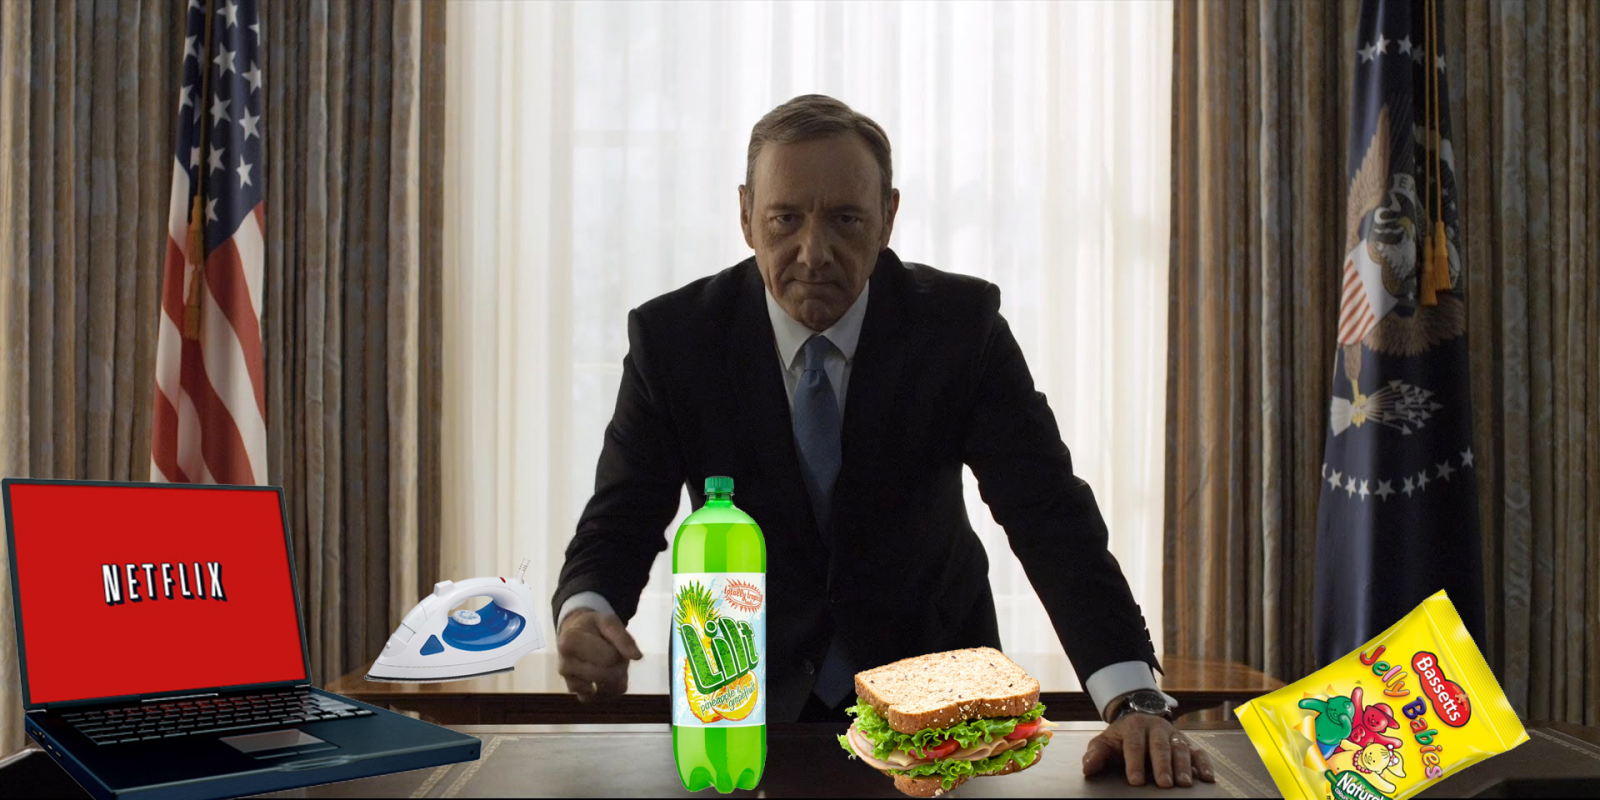 House of Cards Binge Watch